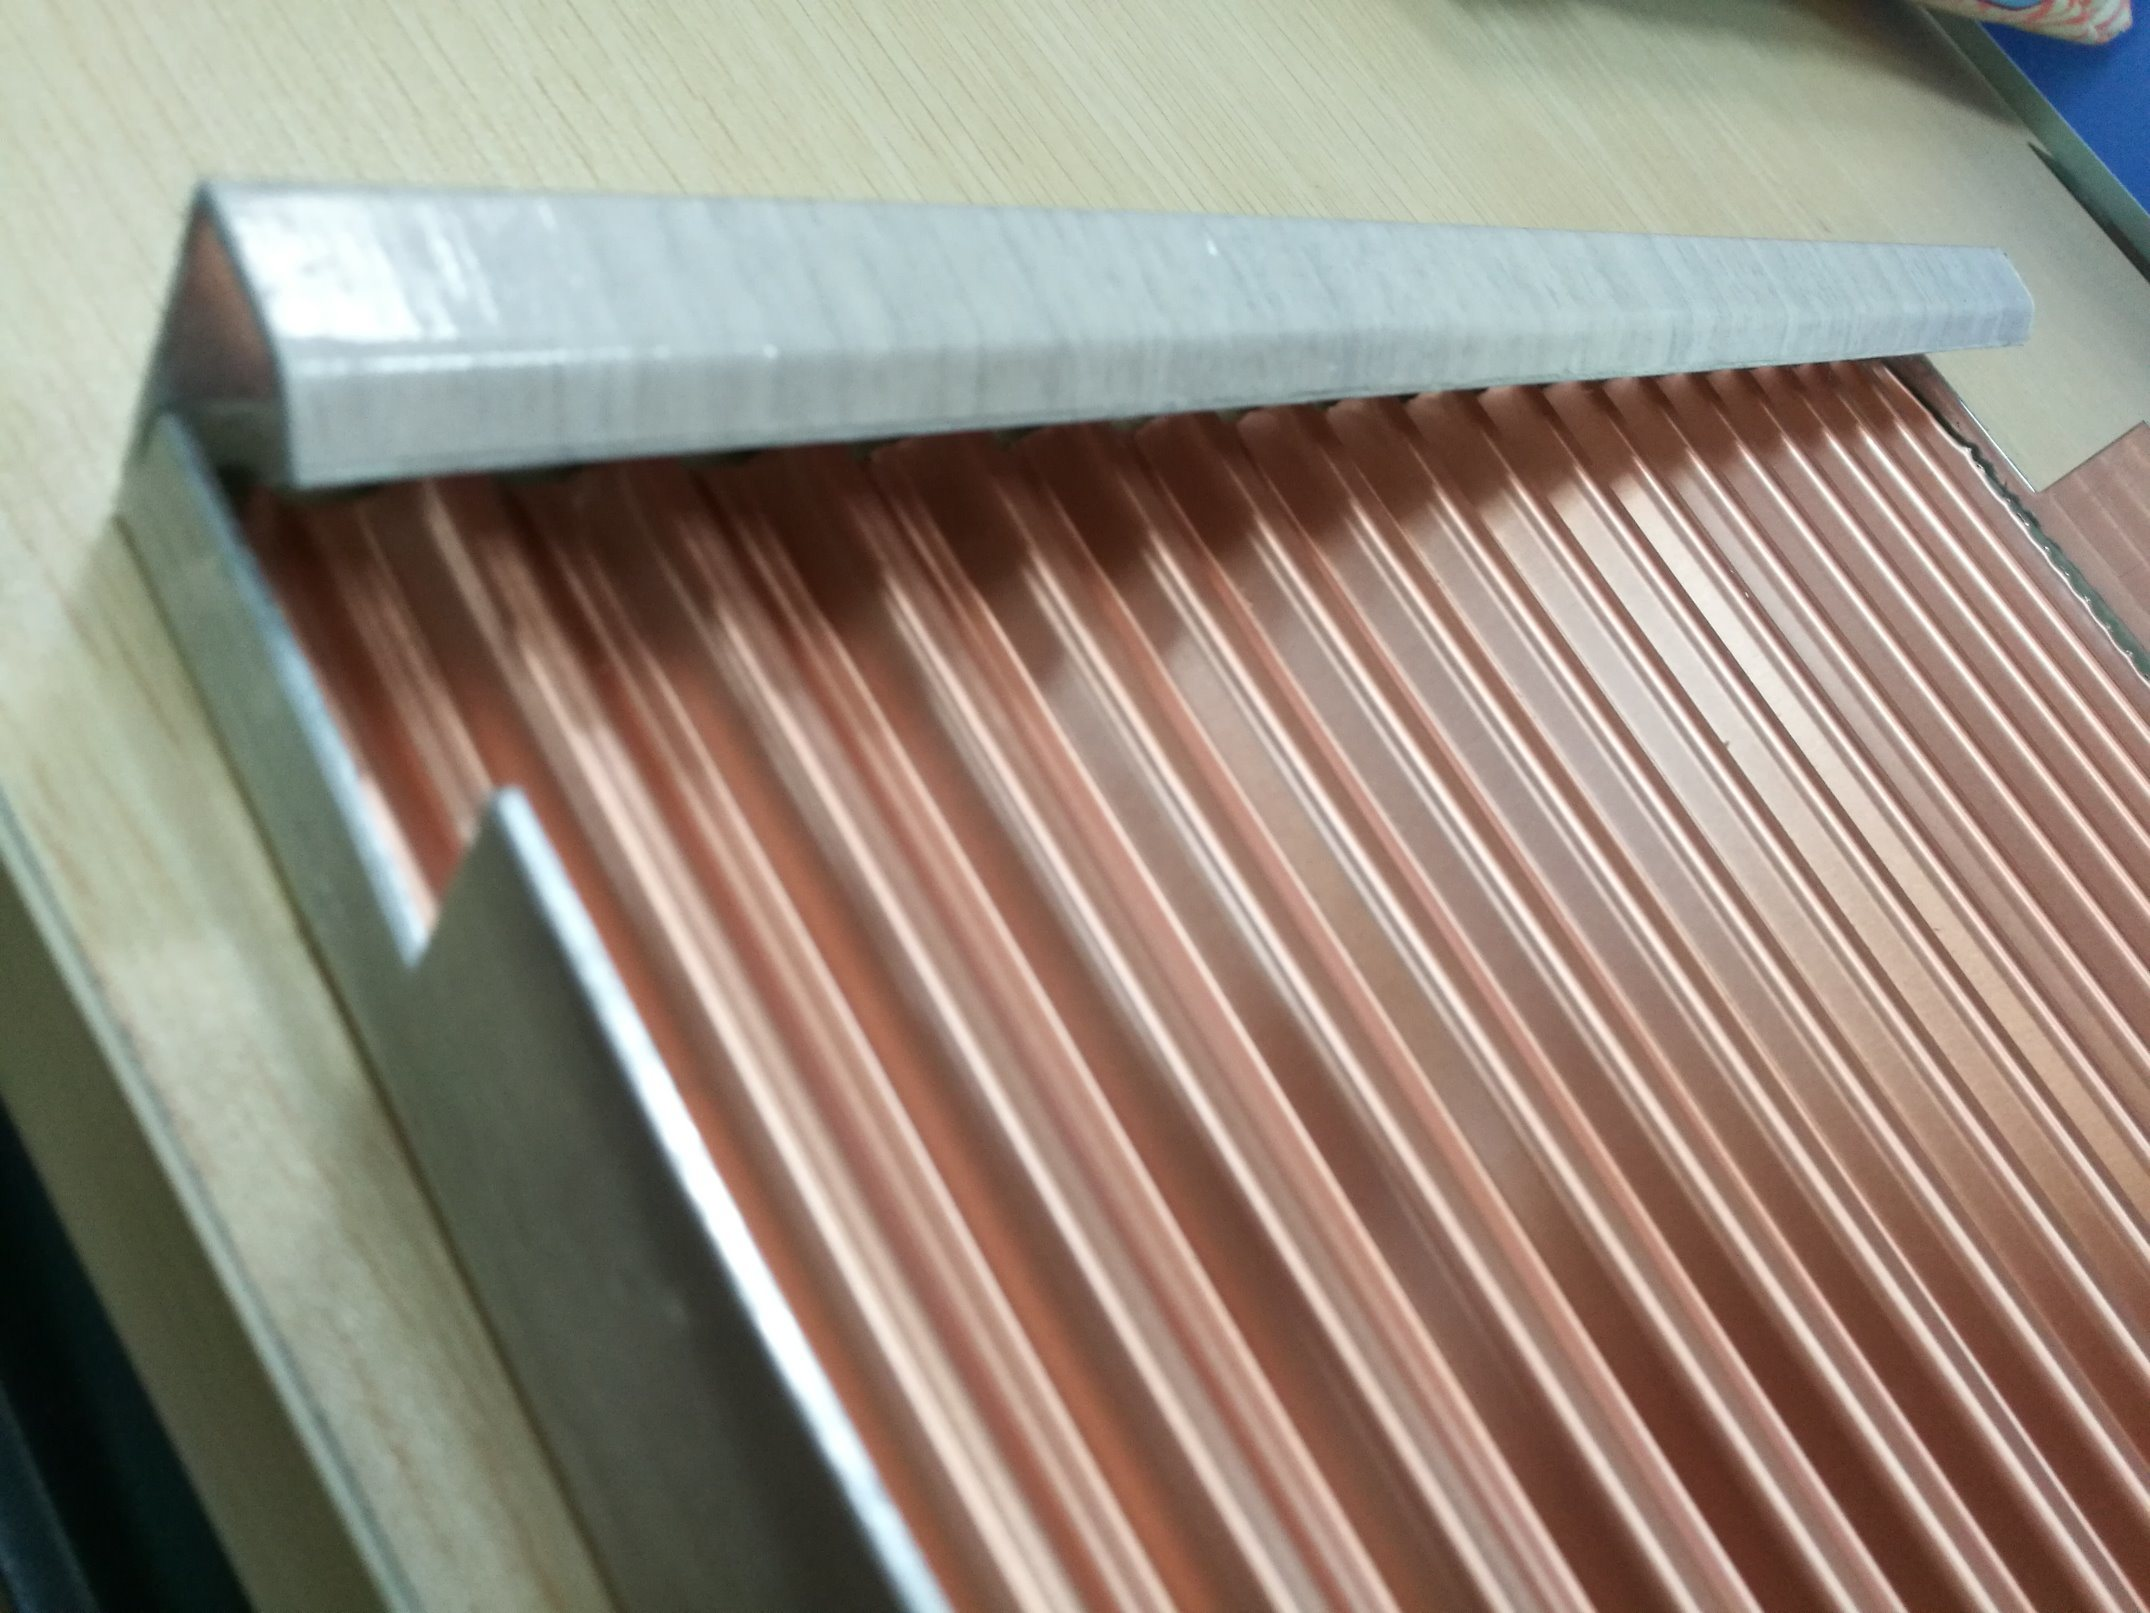 Perforated Decorative Aluminum Corrugated Ceiling Tiles